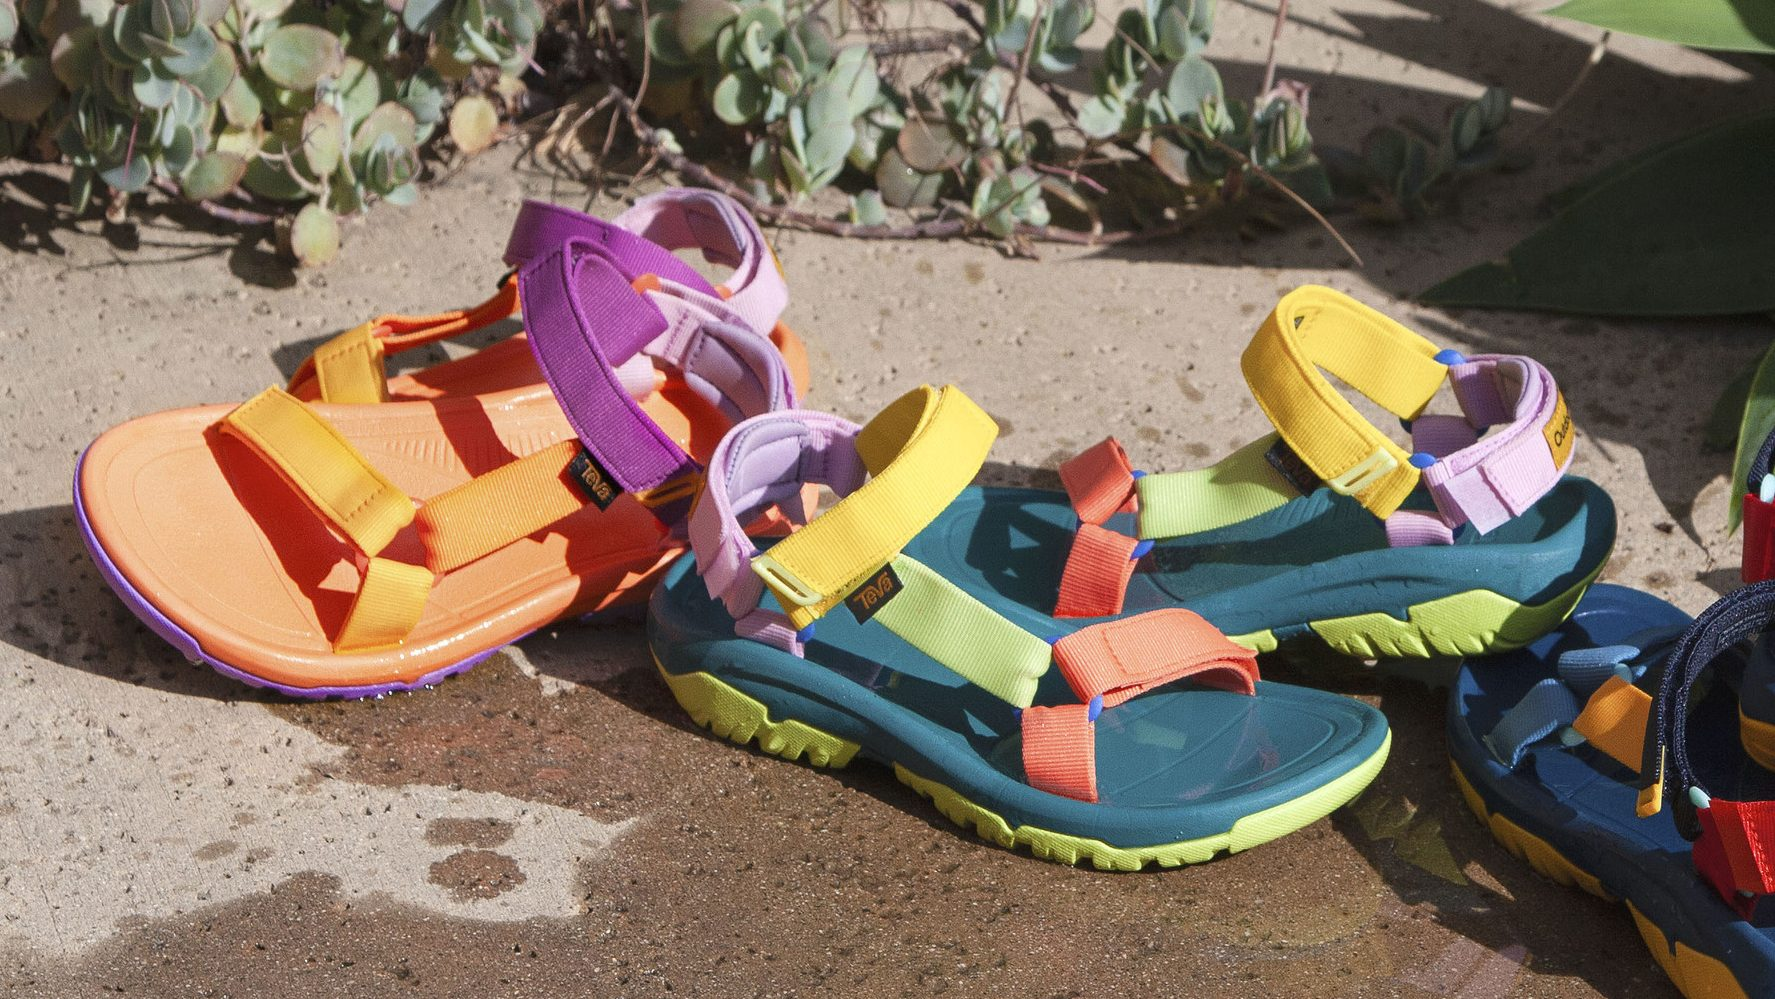 A shot of colorful Teva sandals.